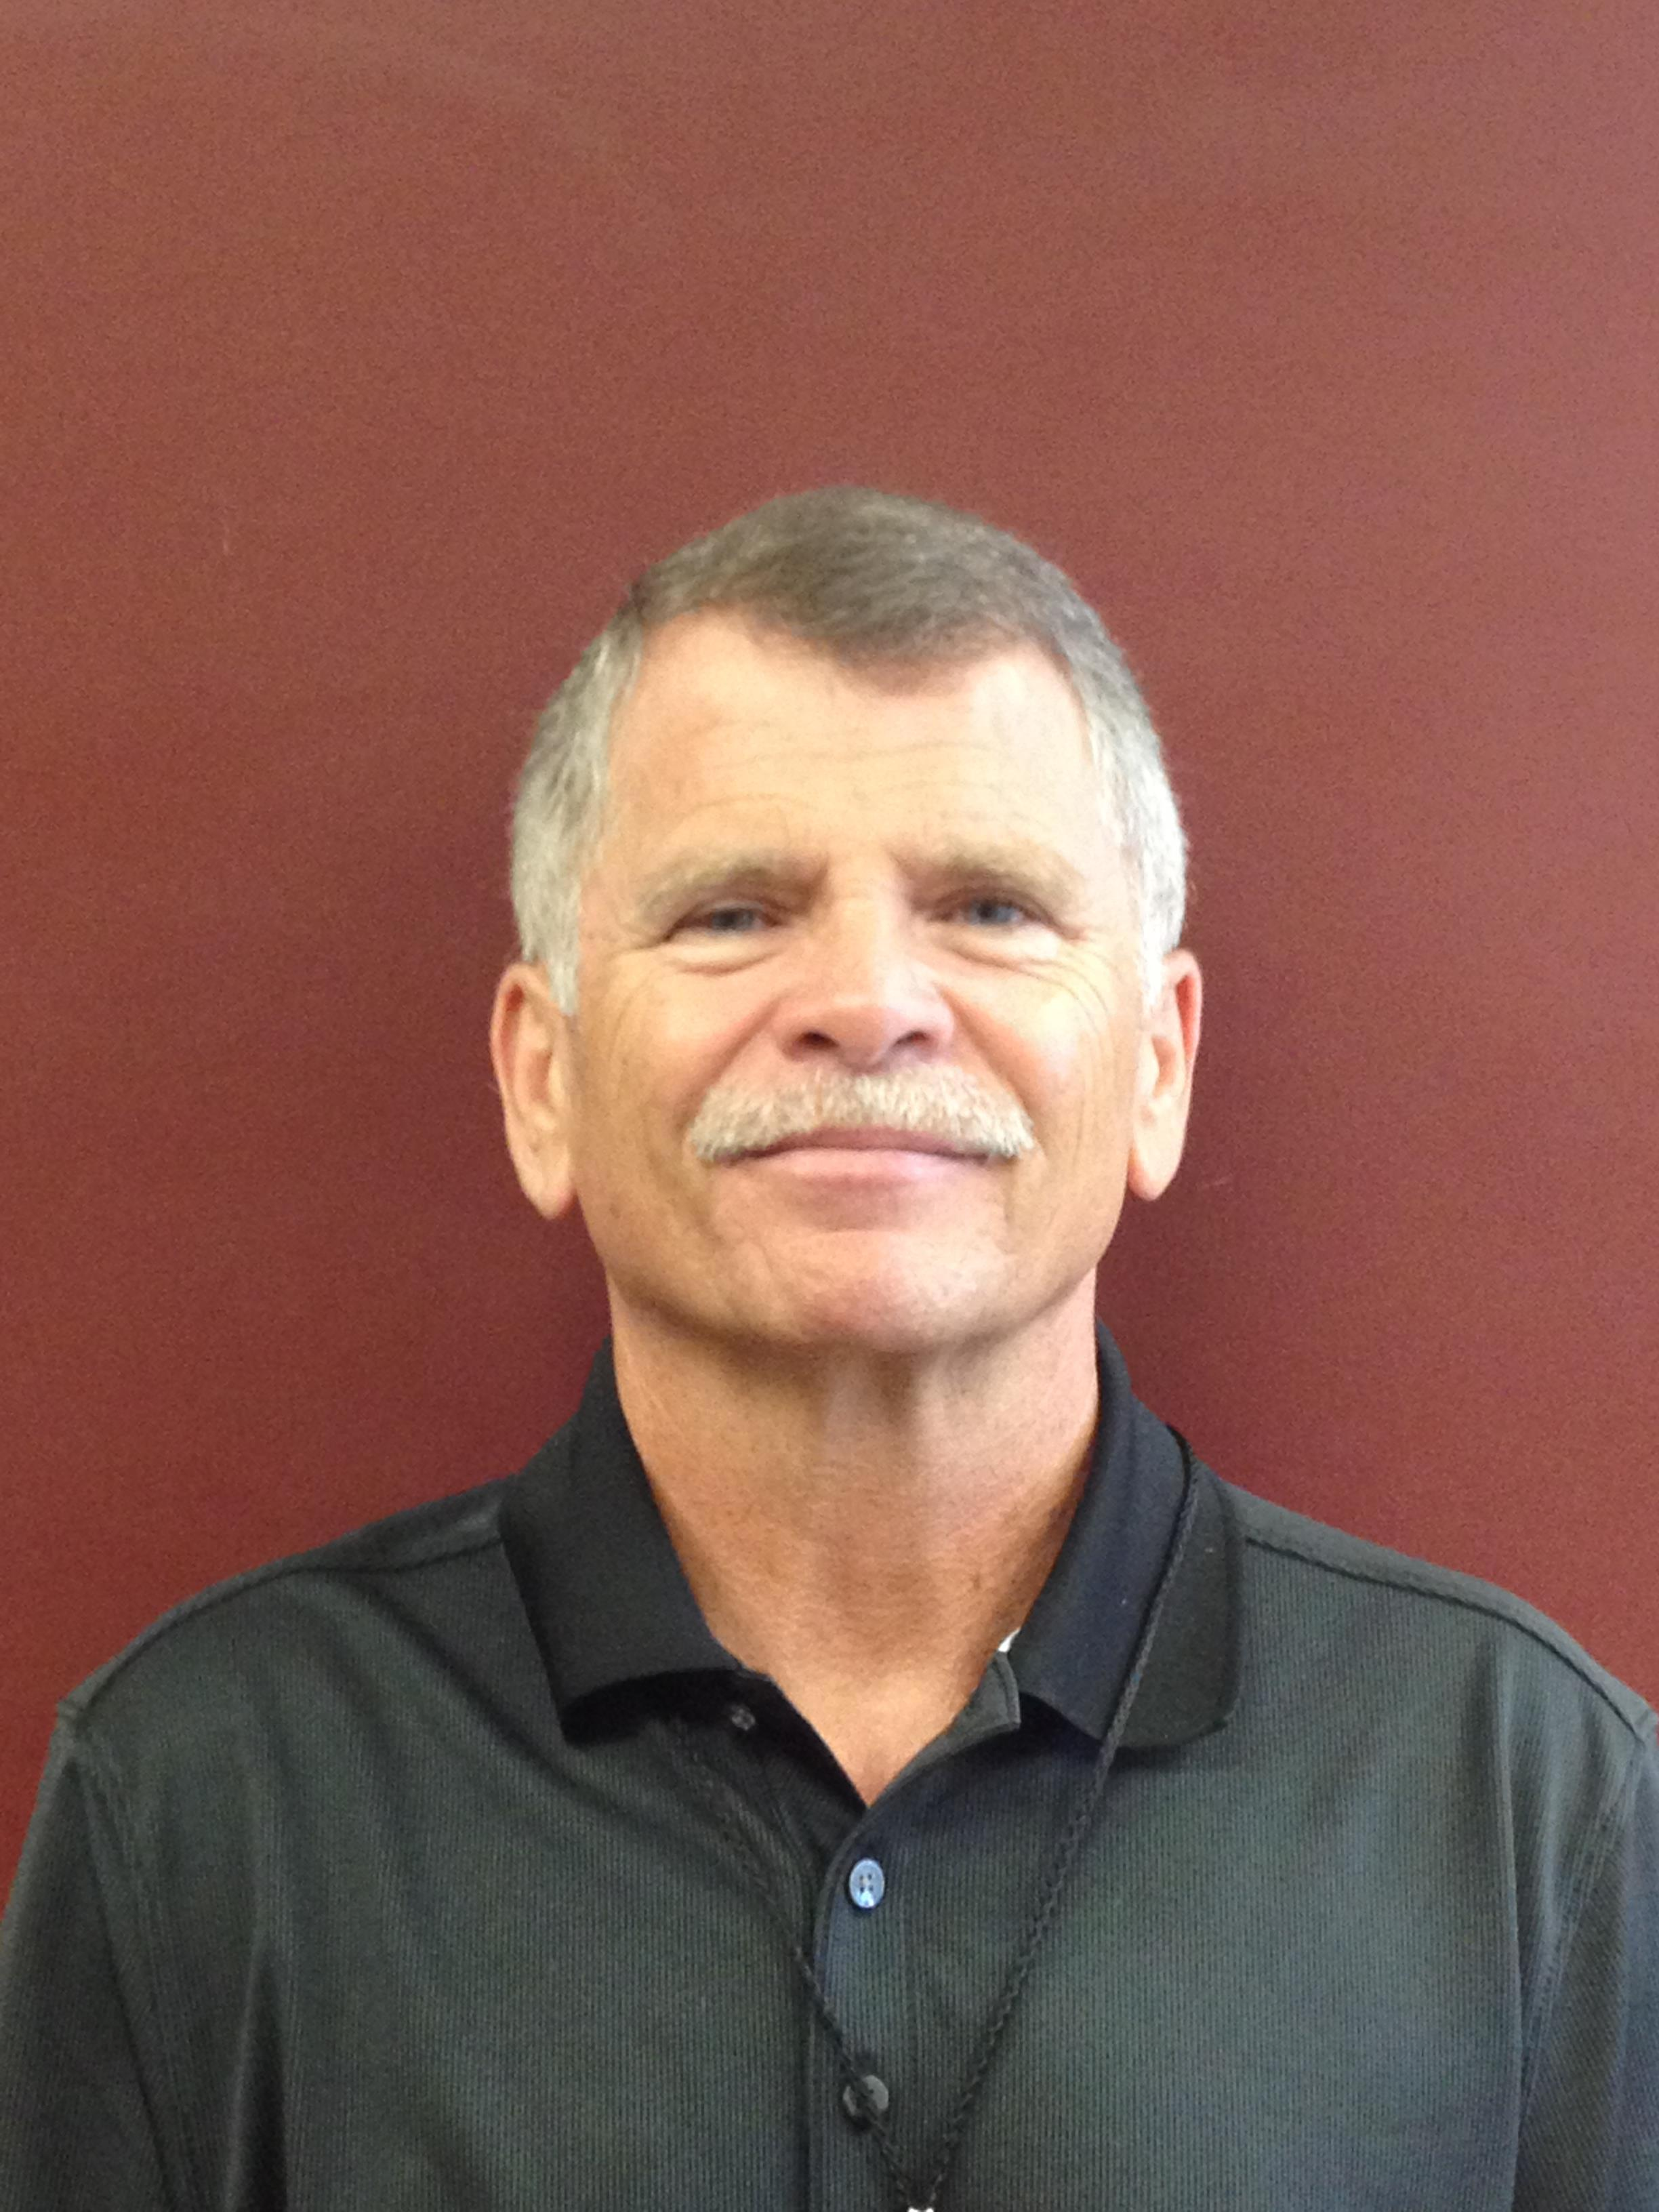 Image of Danny, the Revenue Commissioner of Lauderdale County, Alabama.